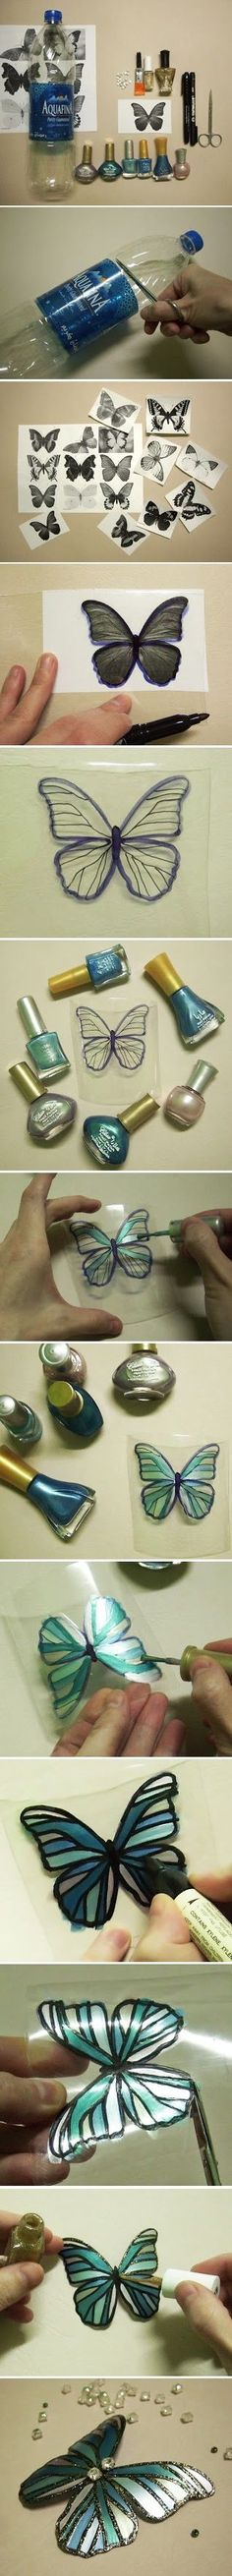 DIY Butterflies Made From Plastic Bottles simple craft